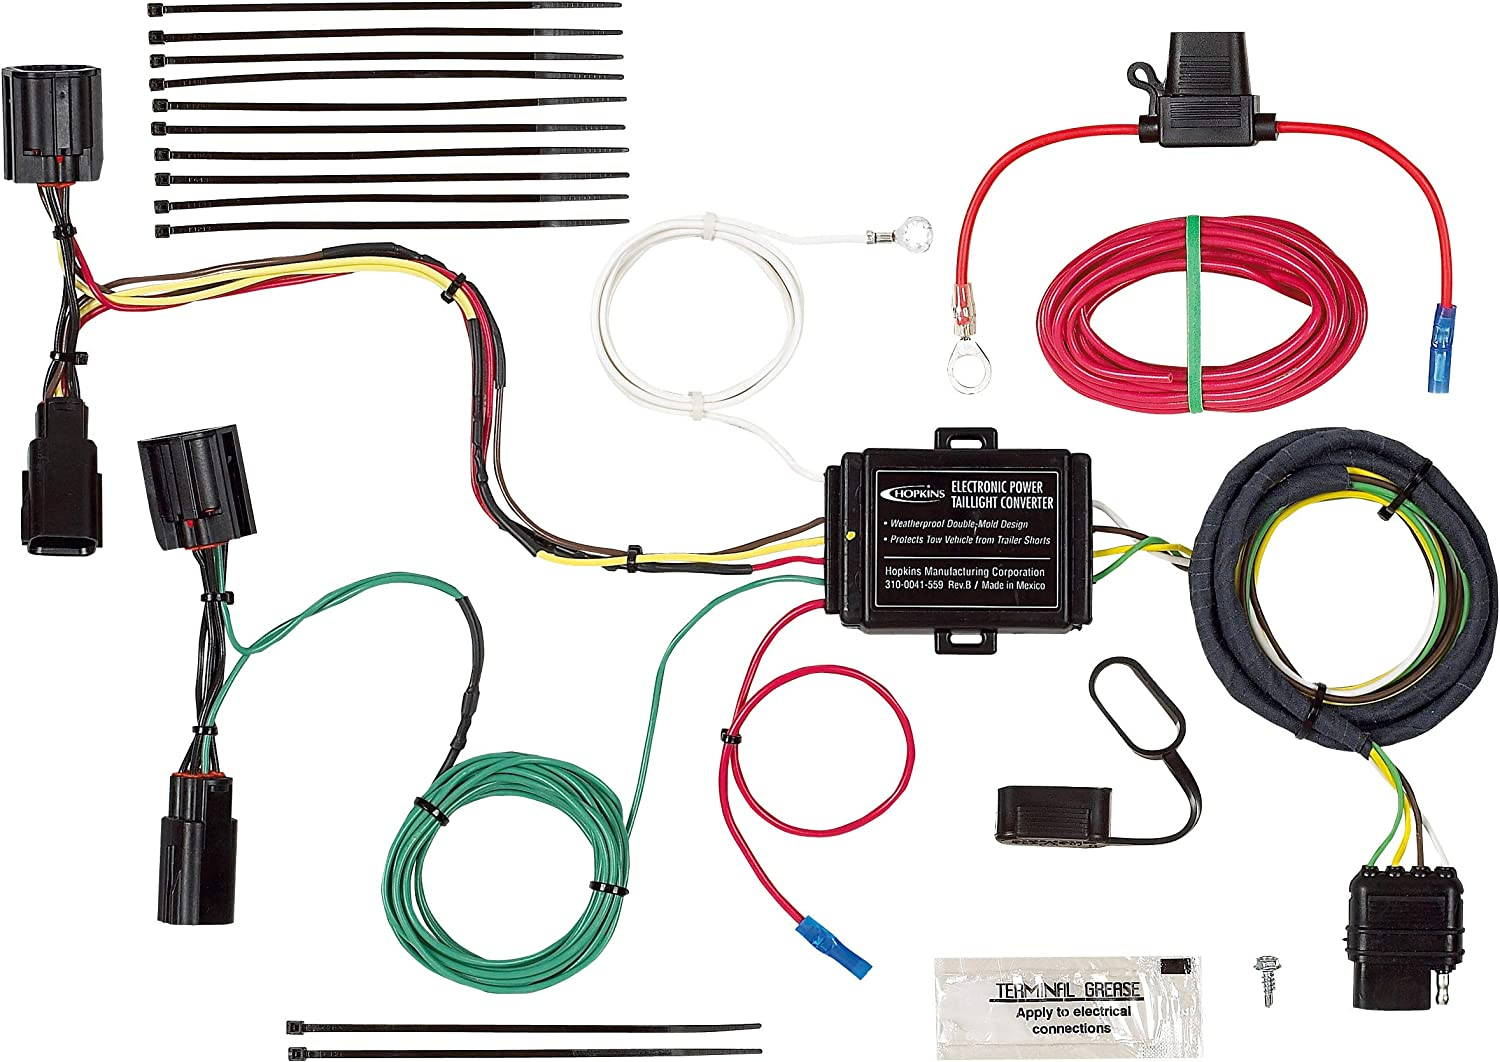 Hopkins 41995 Vehicle Wiring Kit 81RV0Tt-8SLSL1500_